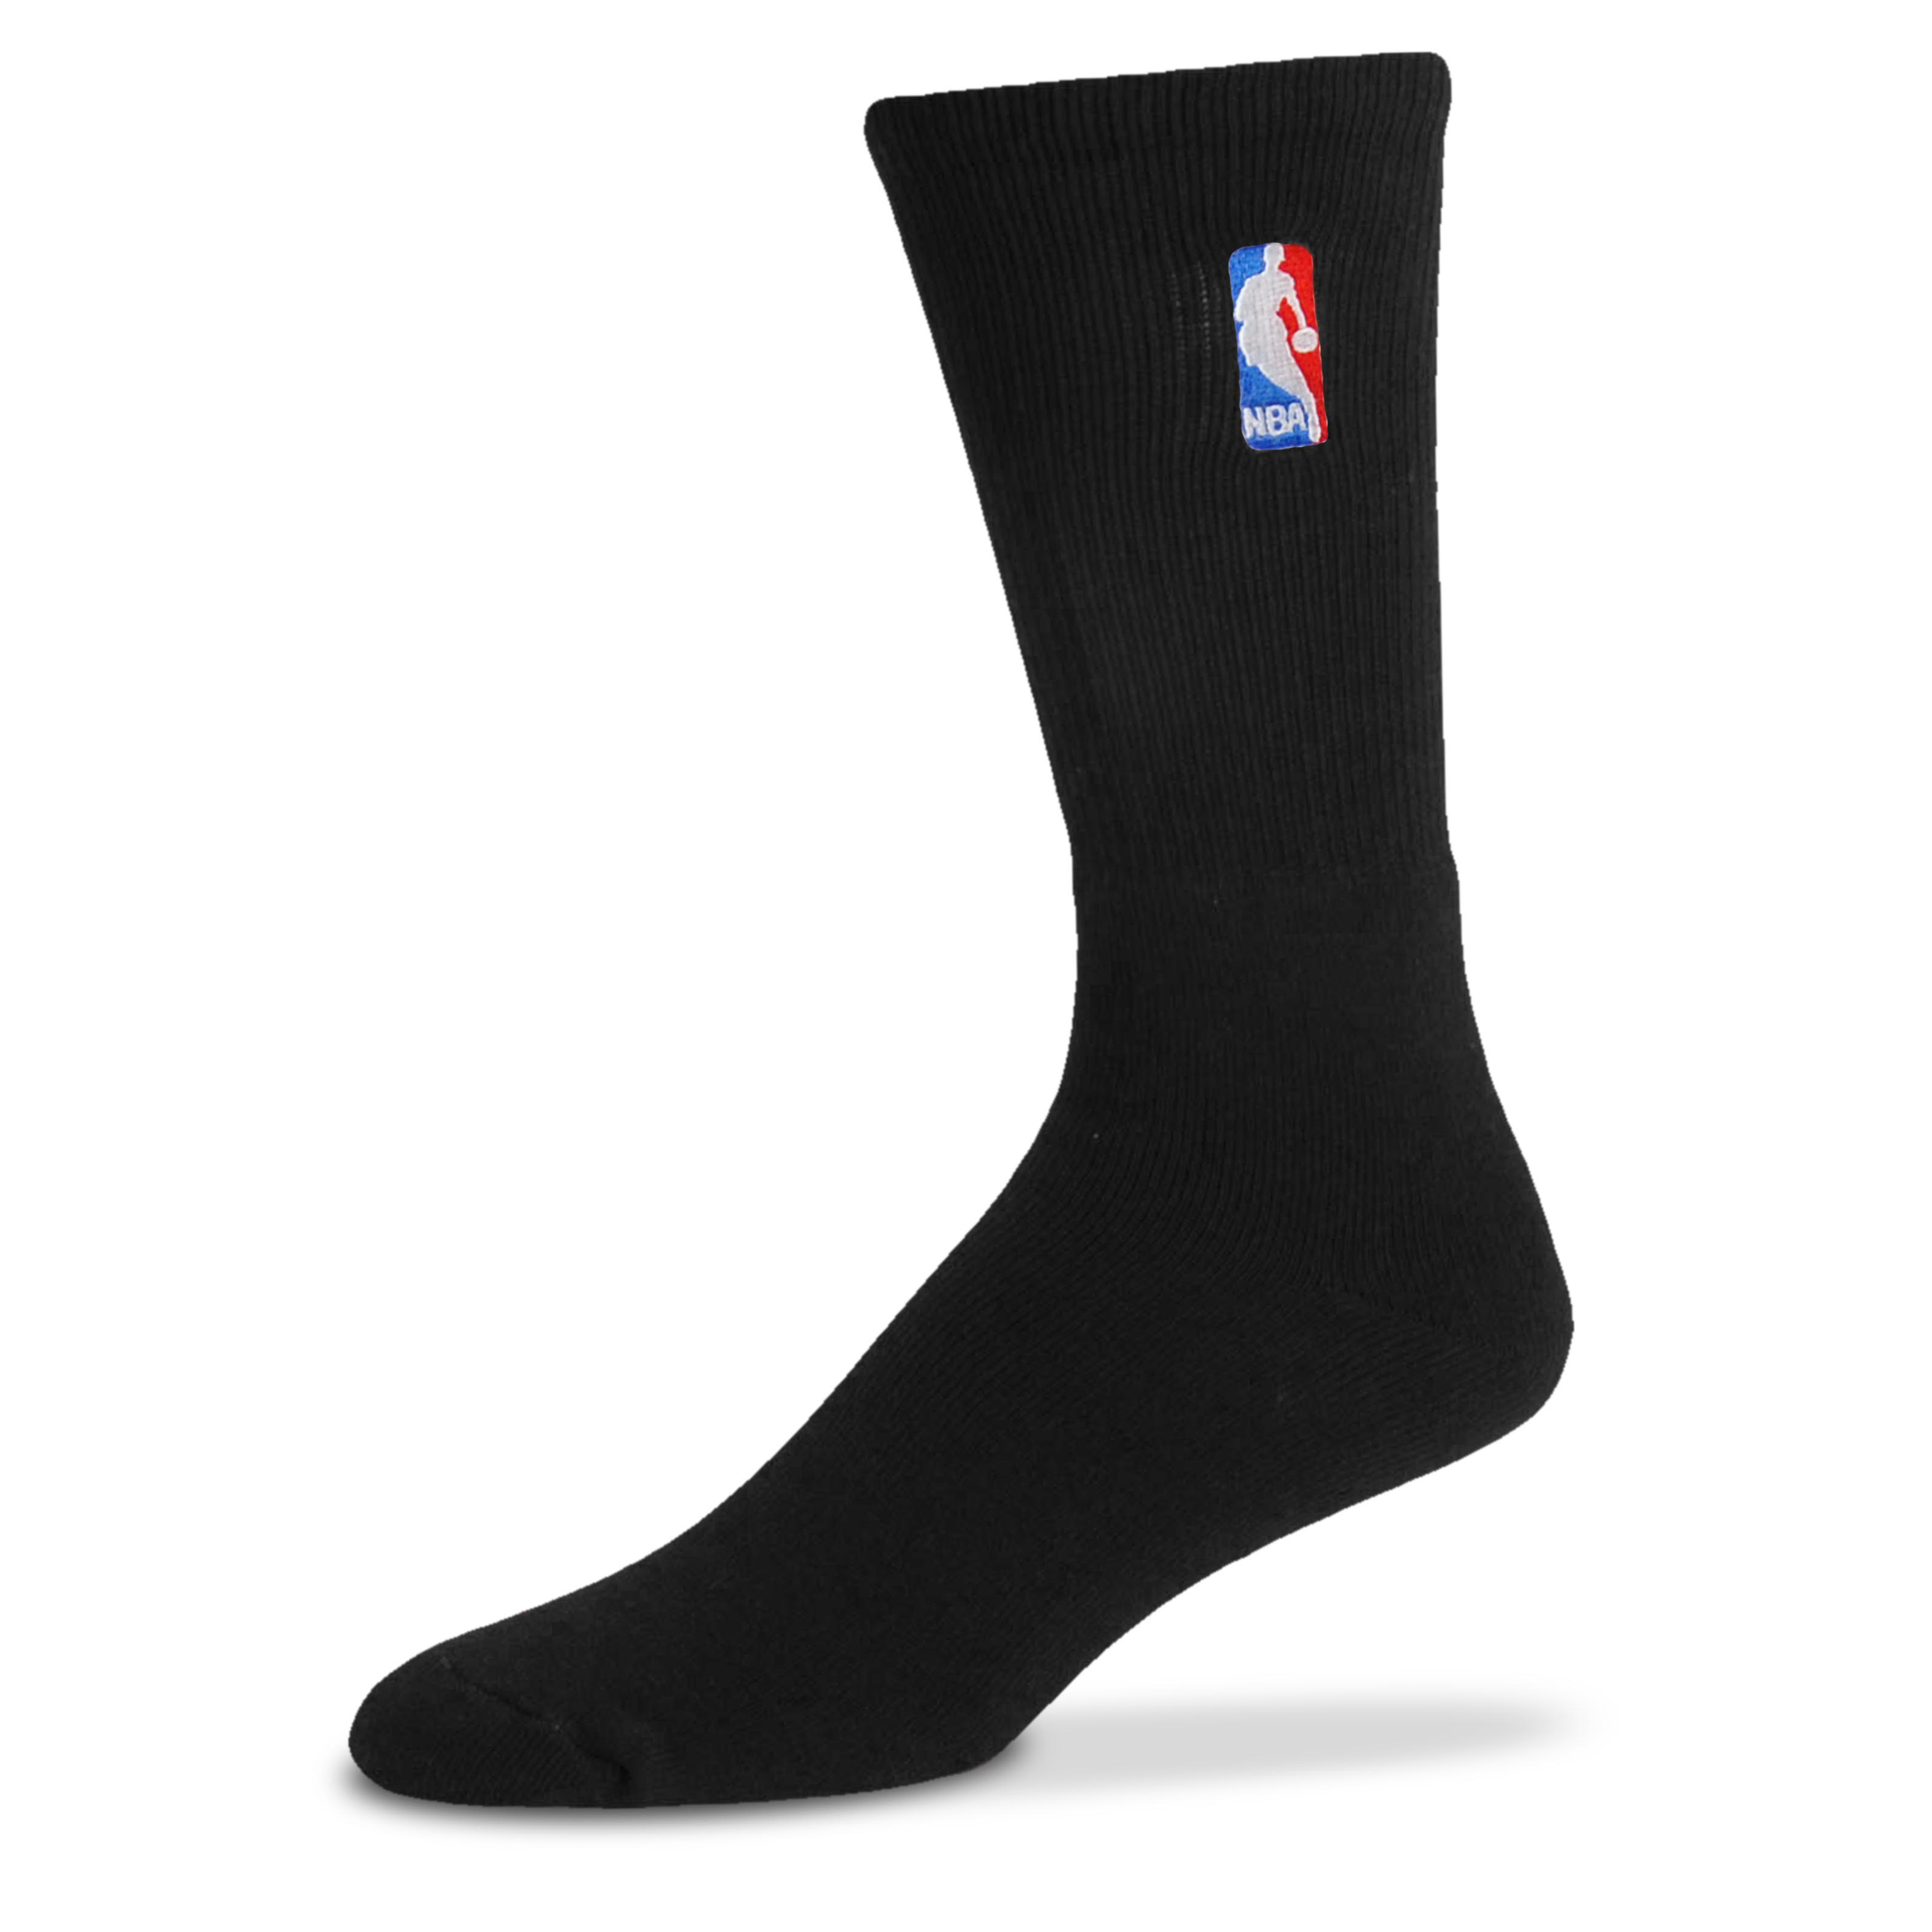 NBA Logoman Crew Sock - Black